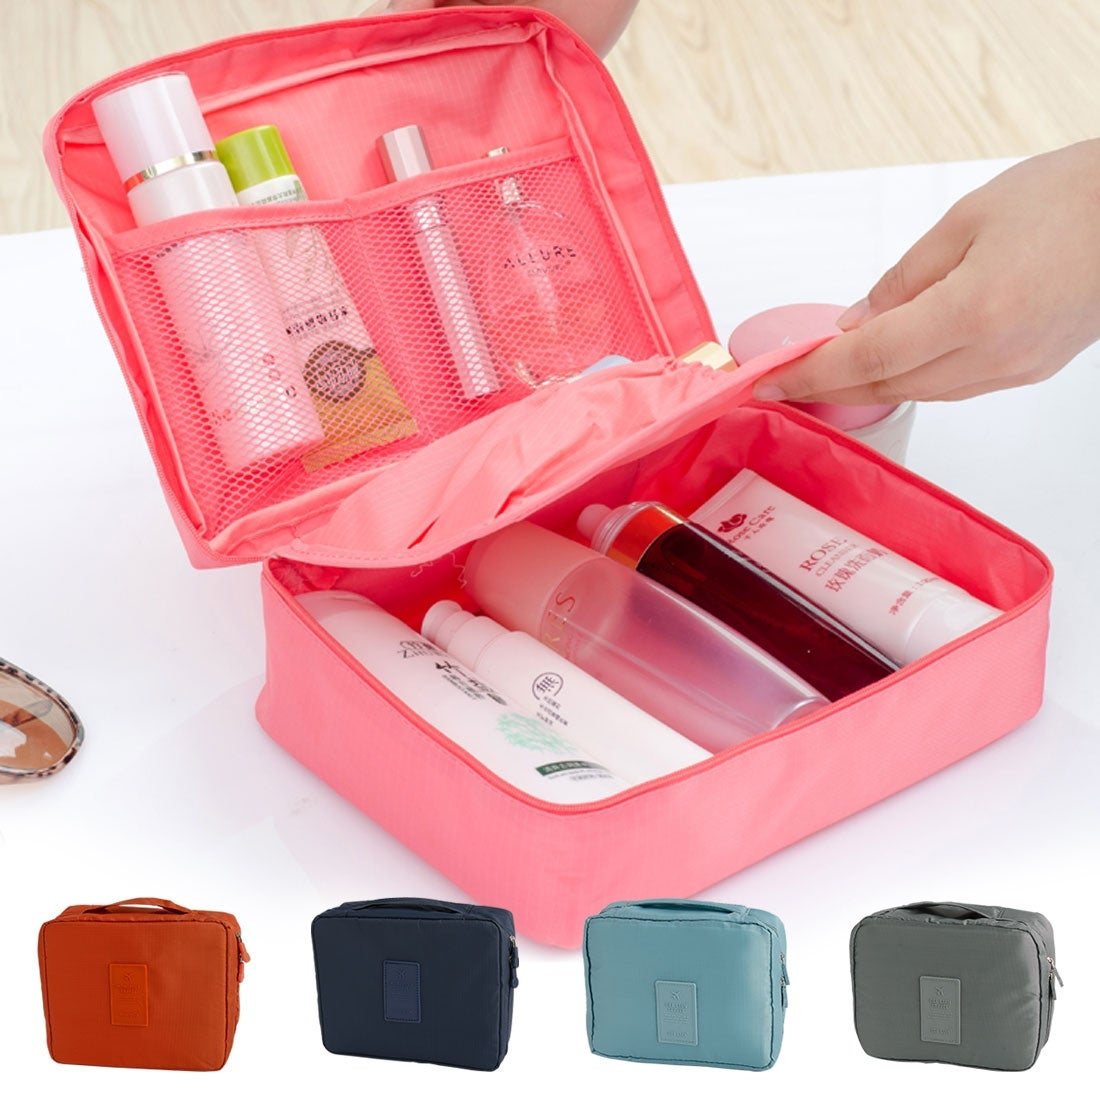 Travel Trip Cosmetic Soap Shampoo Tooth Brush Organize Storage Bag Light Gray